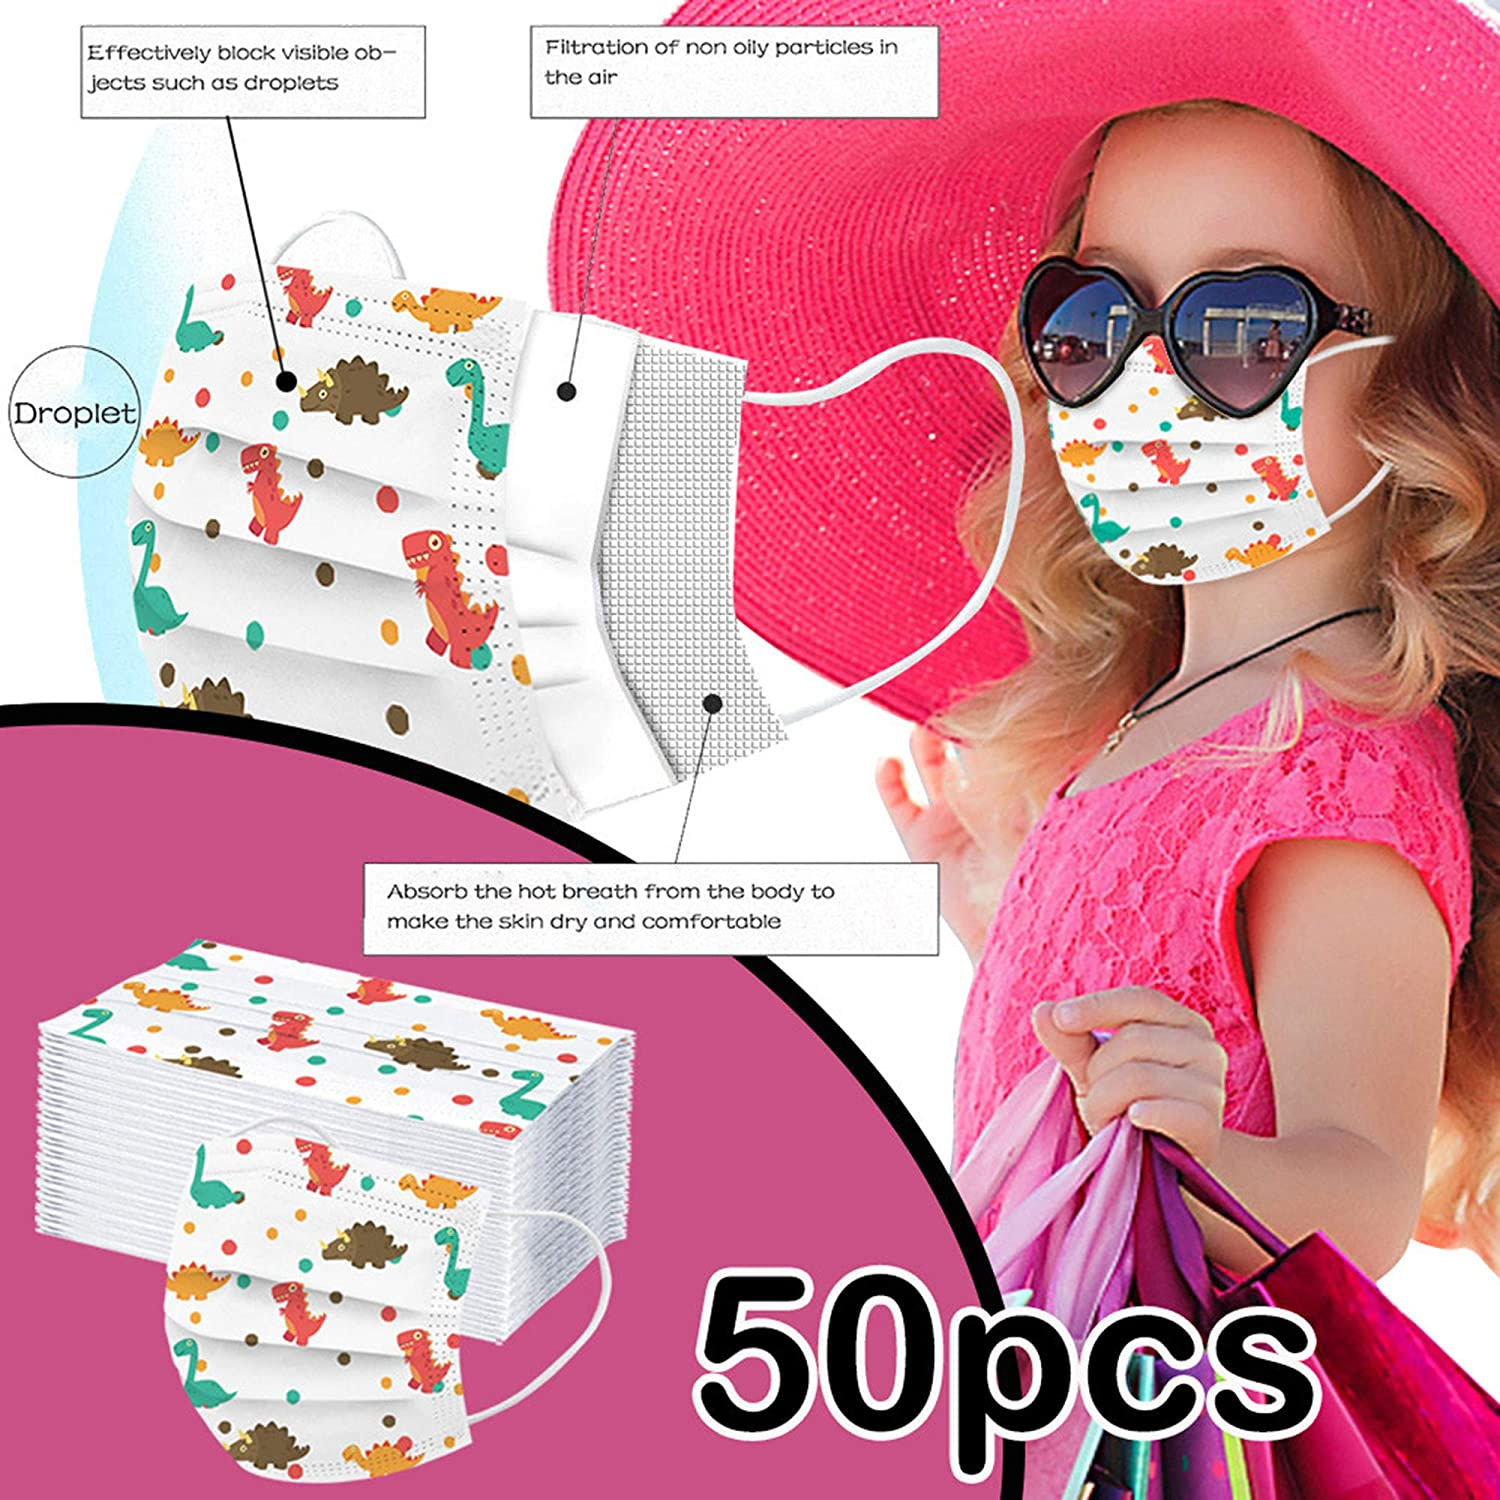 50Pcs Disposable Face Bandanas with Cute Dinosaur Pattern No Washable for Kids 50PCS 3 Ply Non-Woven Childrens Face Bandanas JUSTSELL 【UK Stock】3 Ply Non-Woven Breathable and Anti-Haze DUKt